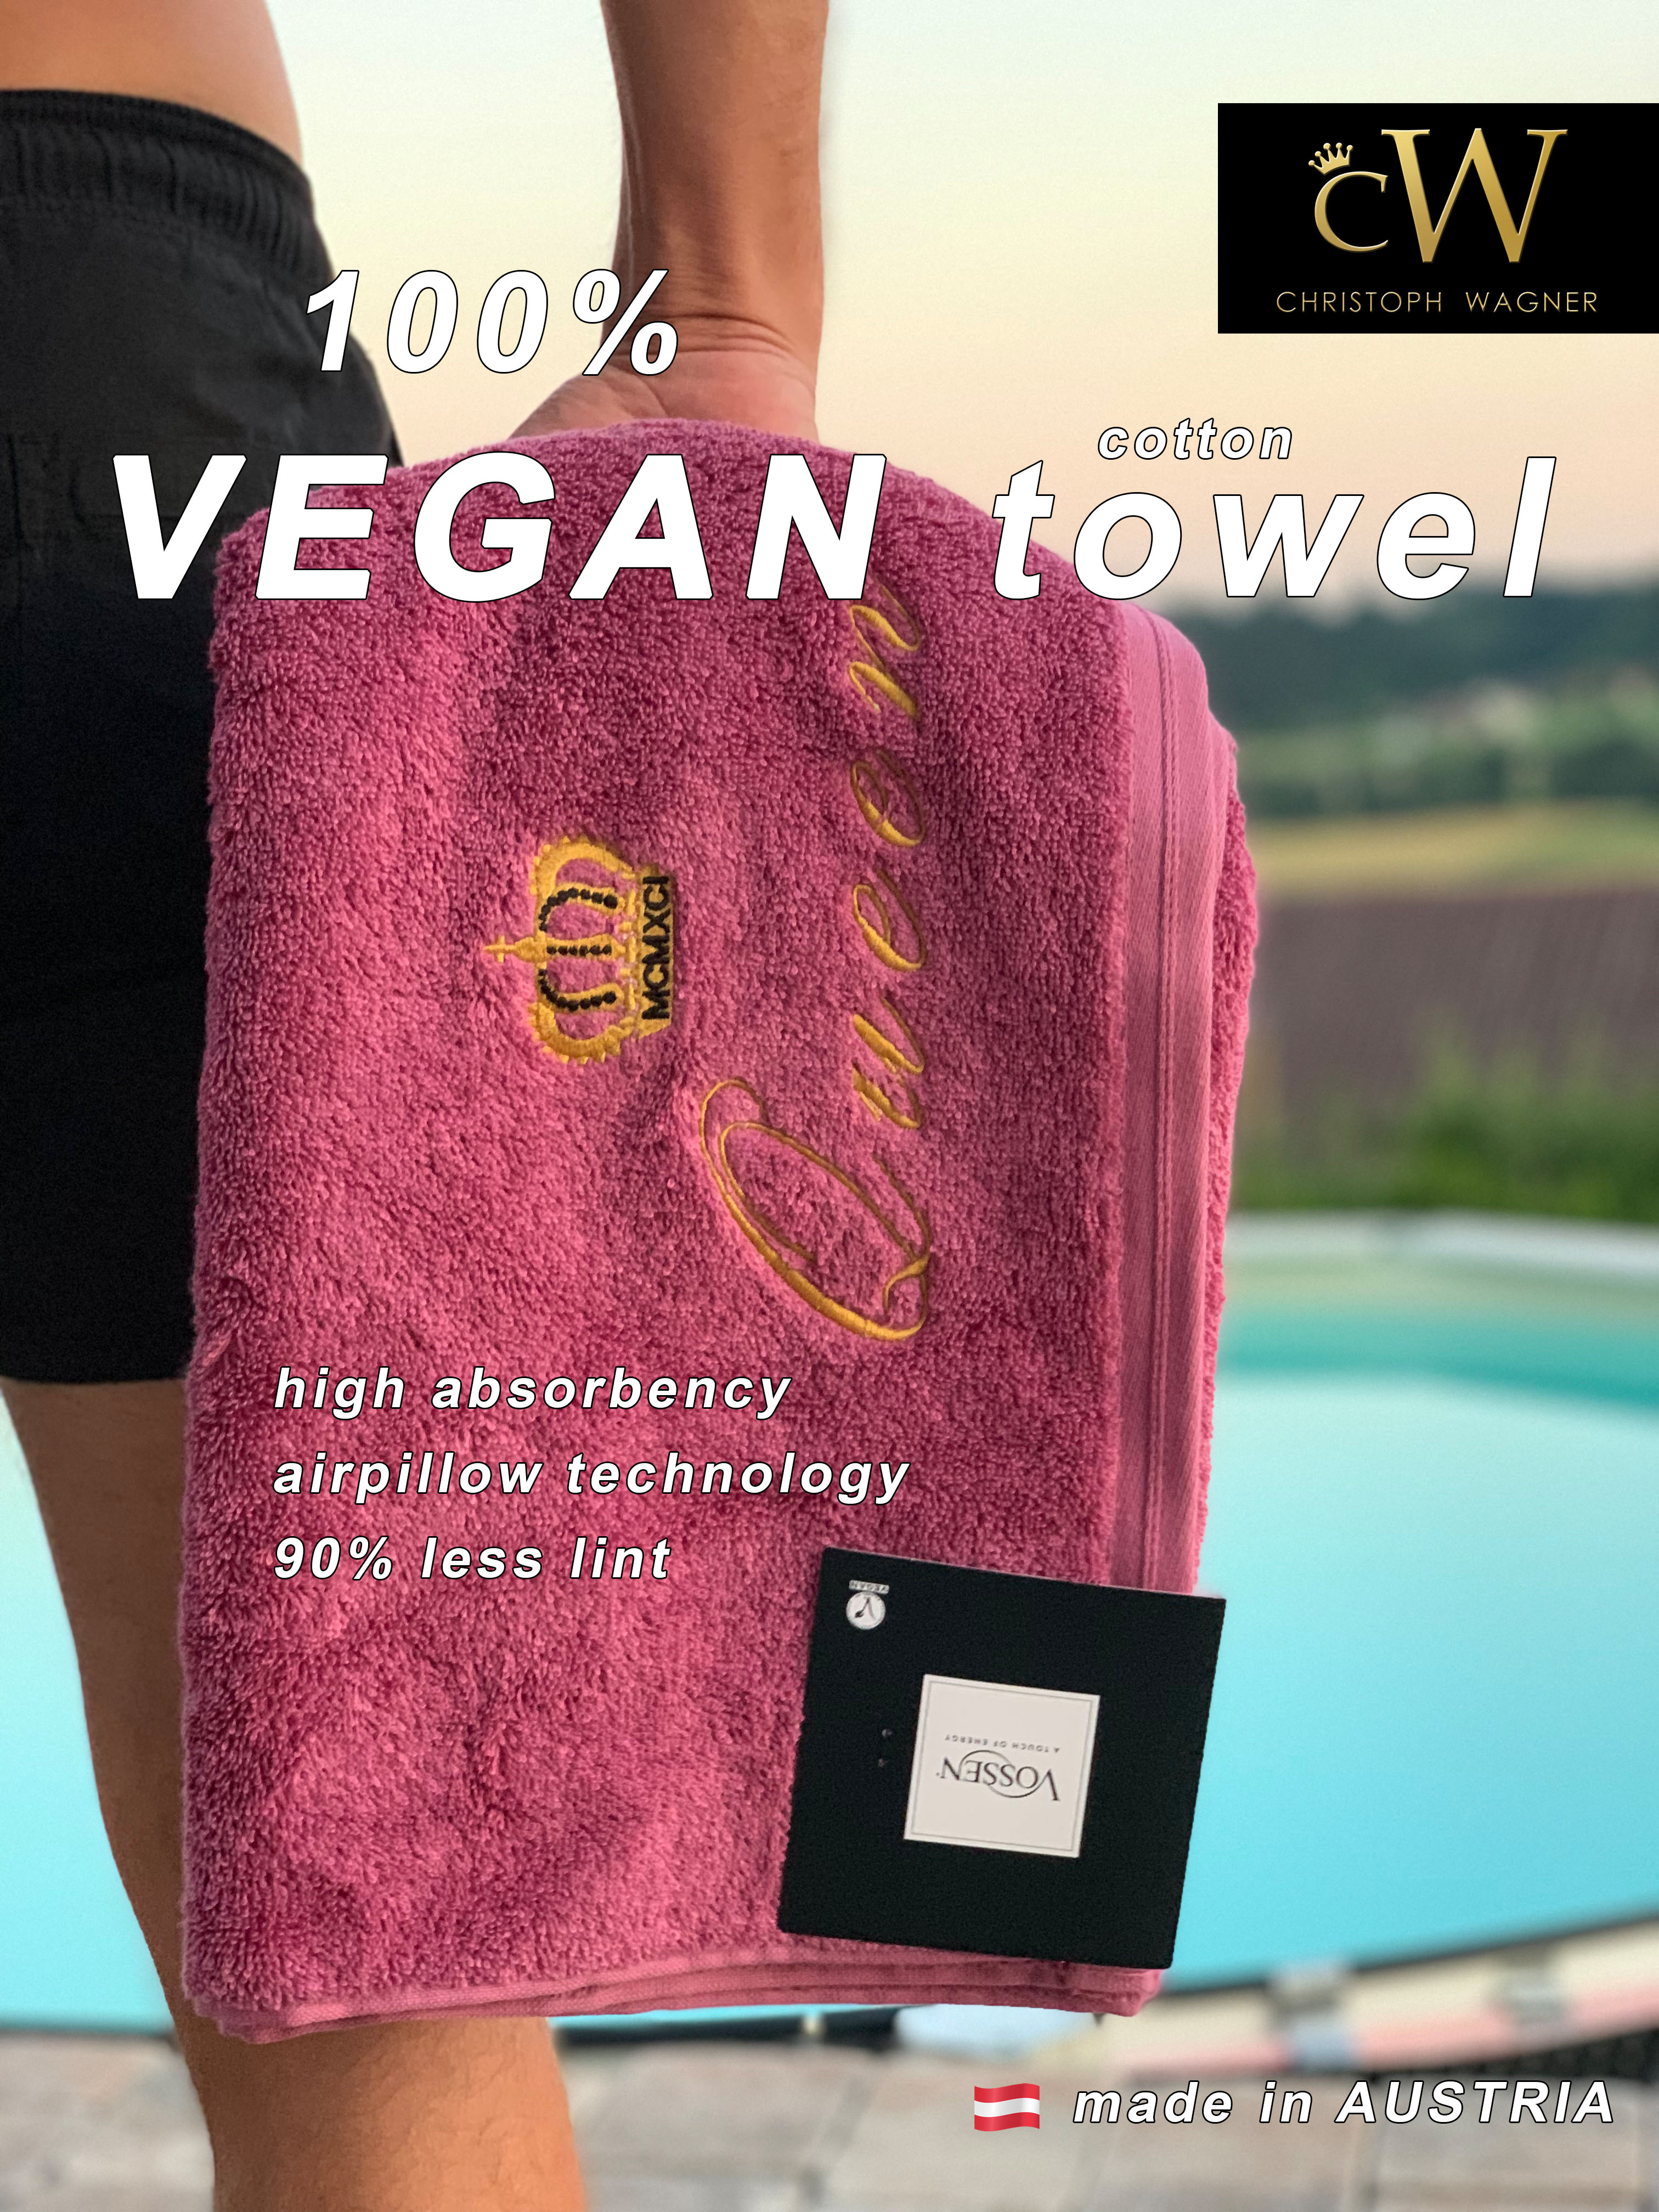 vegan towel pink cover